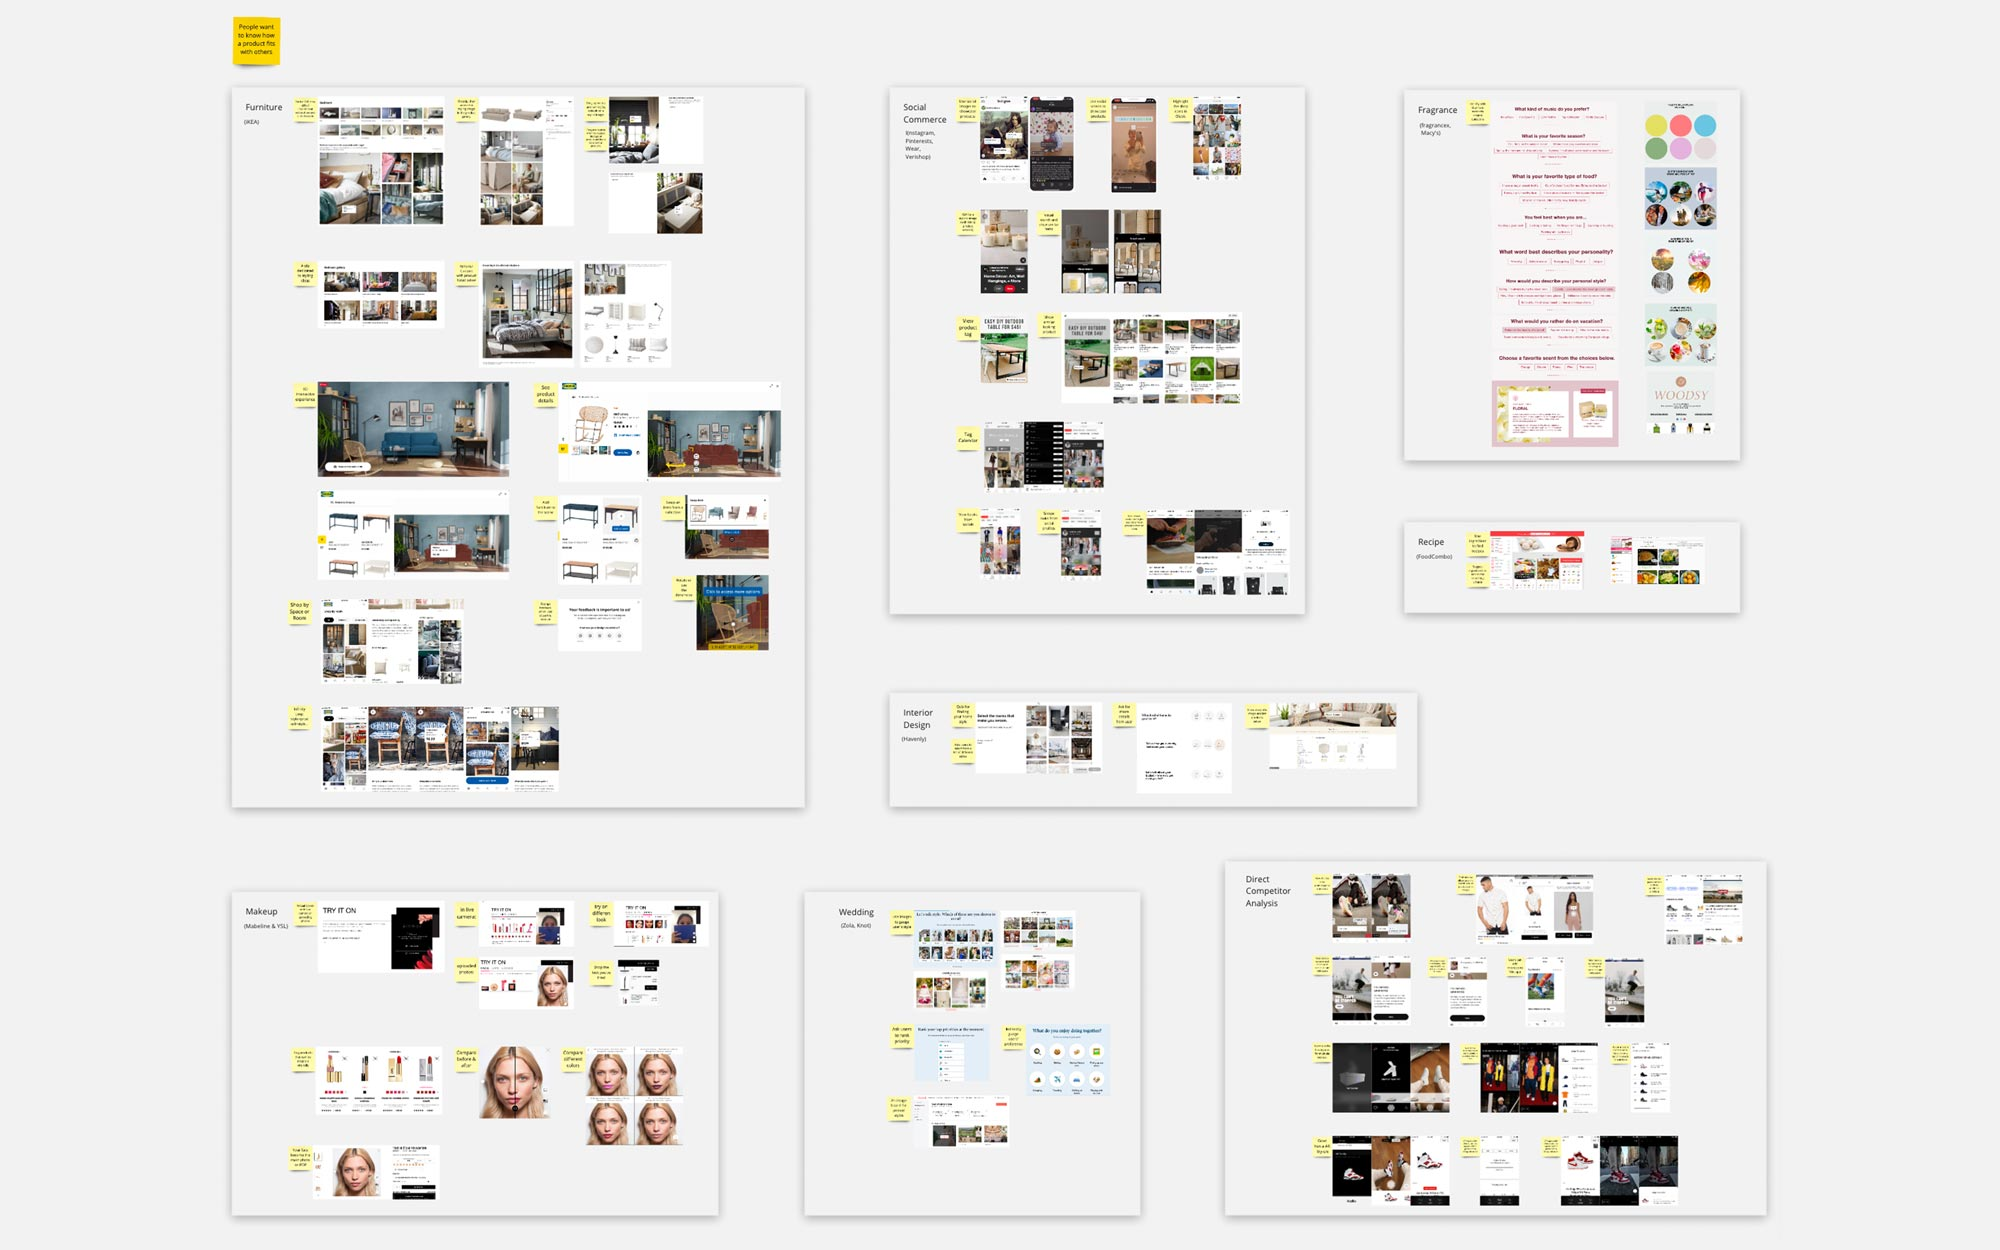 A wall of ideas about how furniture, interior design, makeup, food, wedding, and social commerce industries engage with users on style.